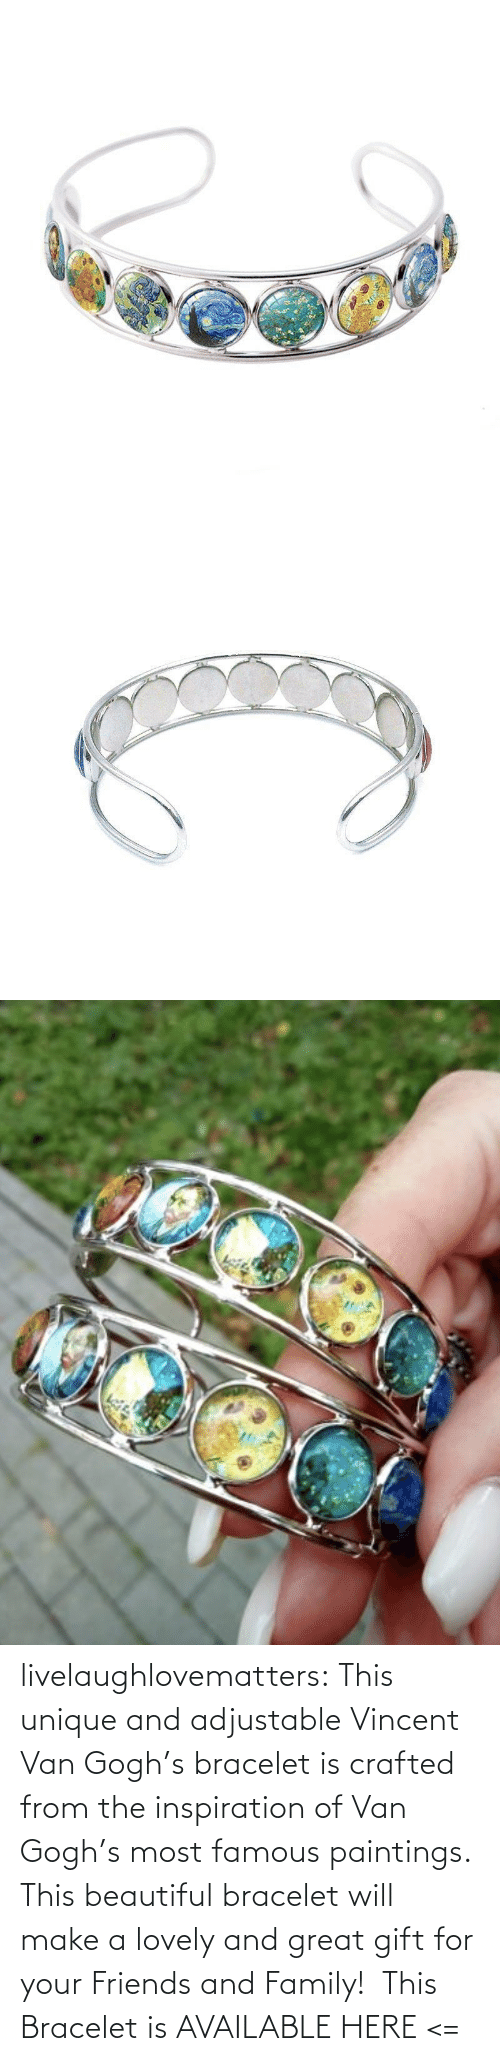 van: livelaughlovematters: This unique and adjustable Vincent Van Gogh's bracelet is crafted from the inspiration of Van Gogh's most famous paintings. This beautiful bracelet will make a lovely and great gift for your Friends and Family!  This Bracelet is AVAILABLE HERE <=